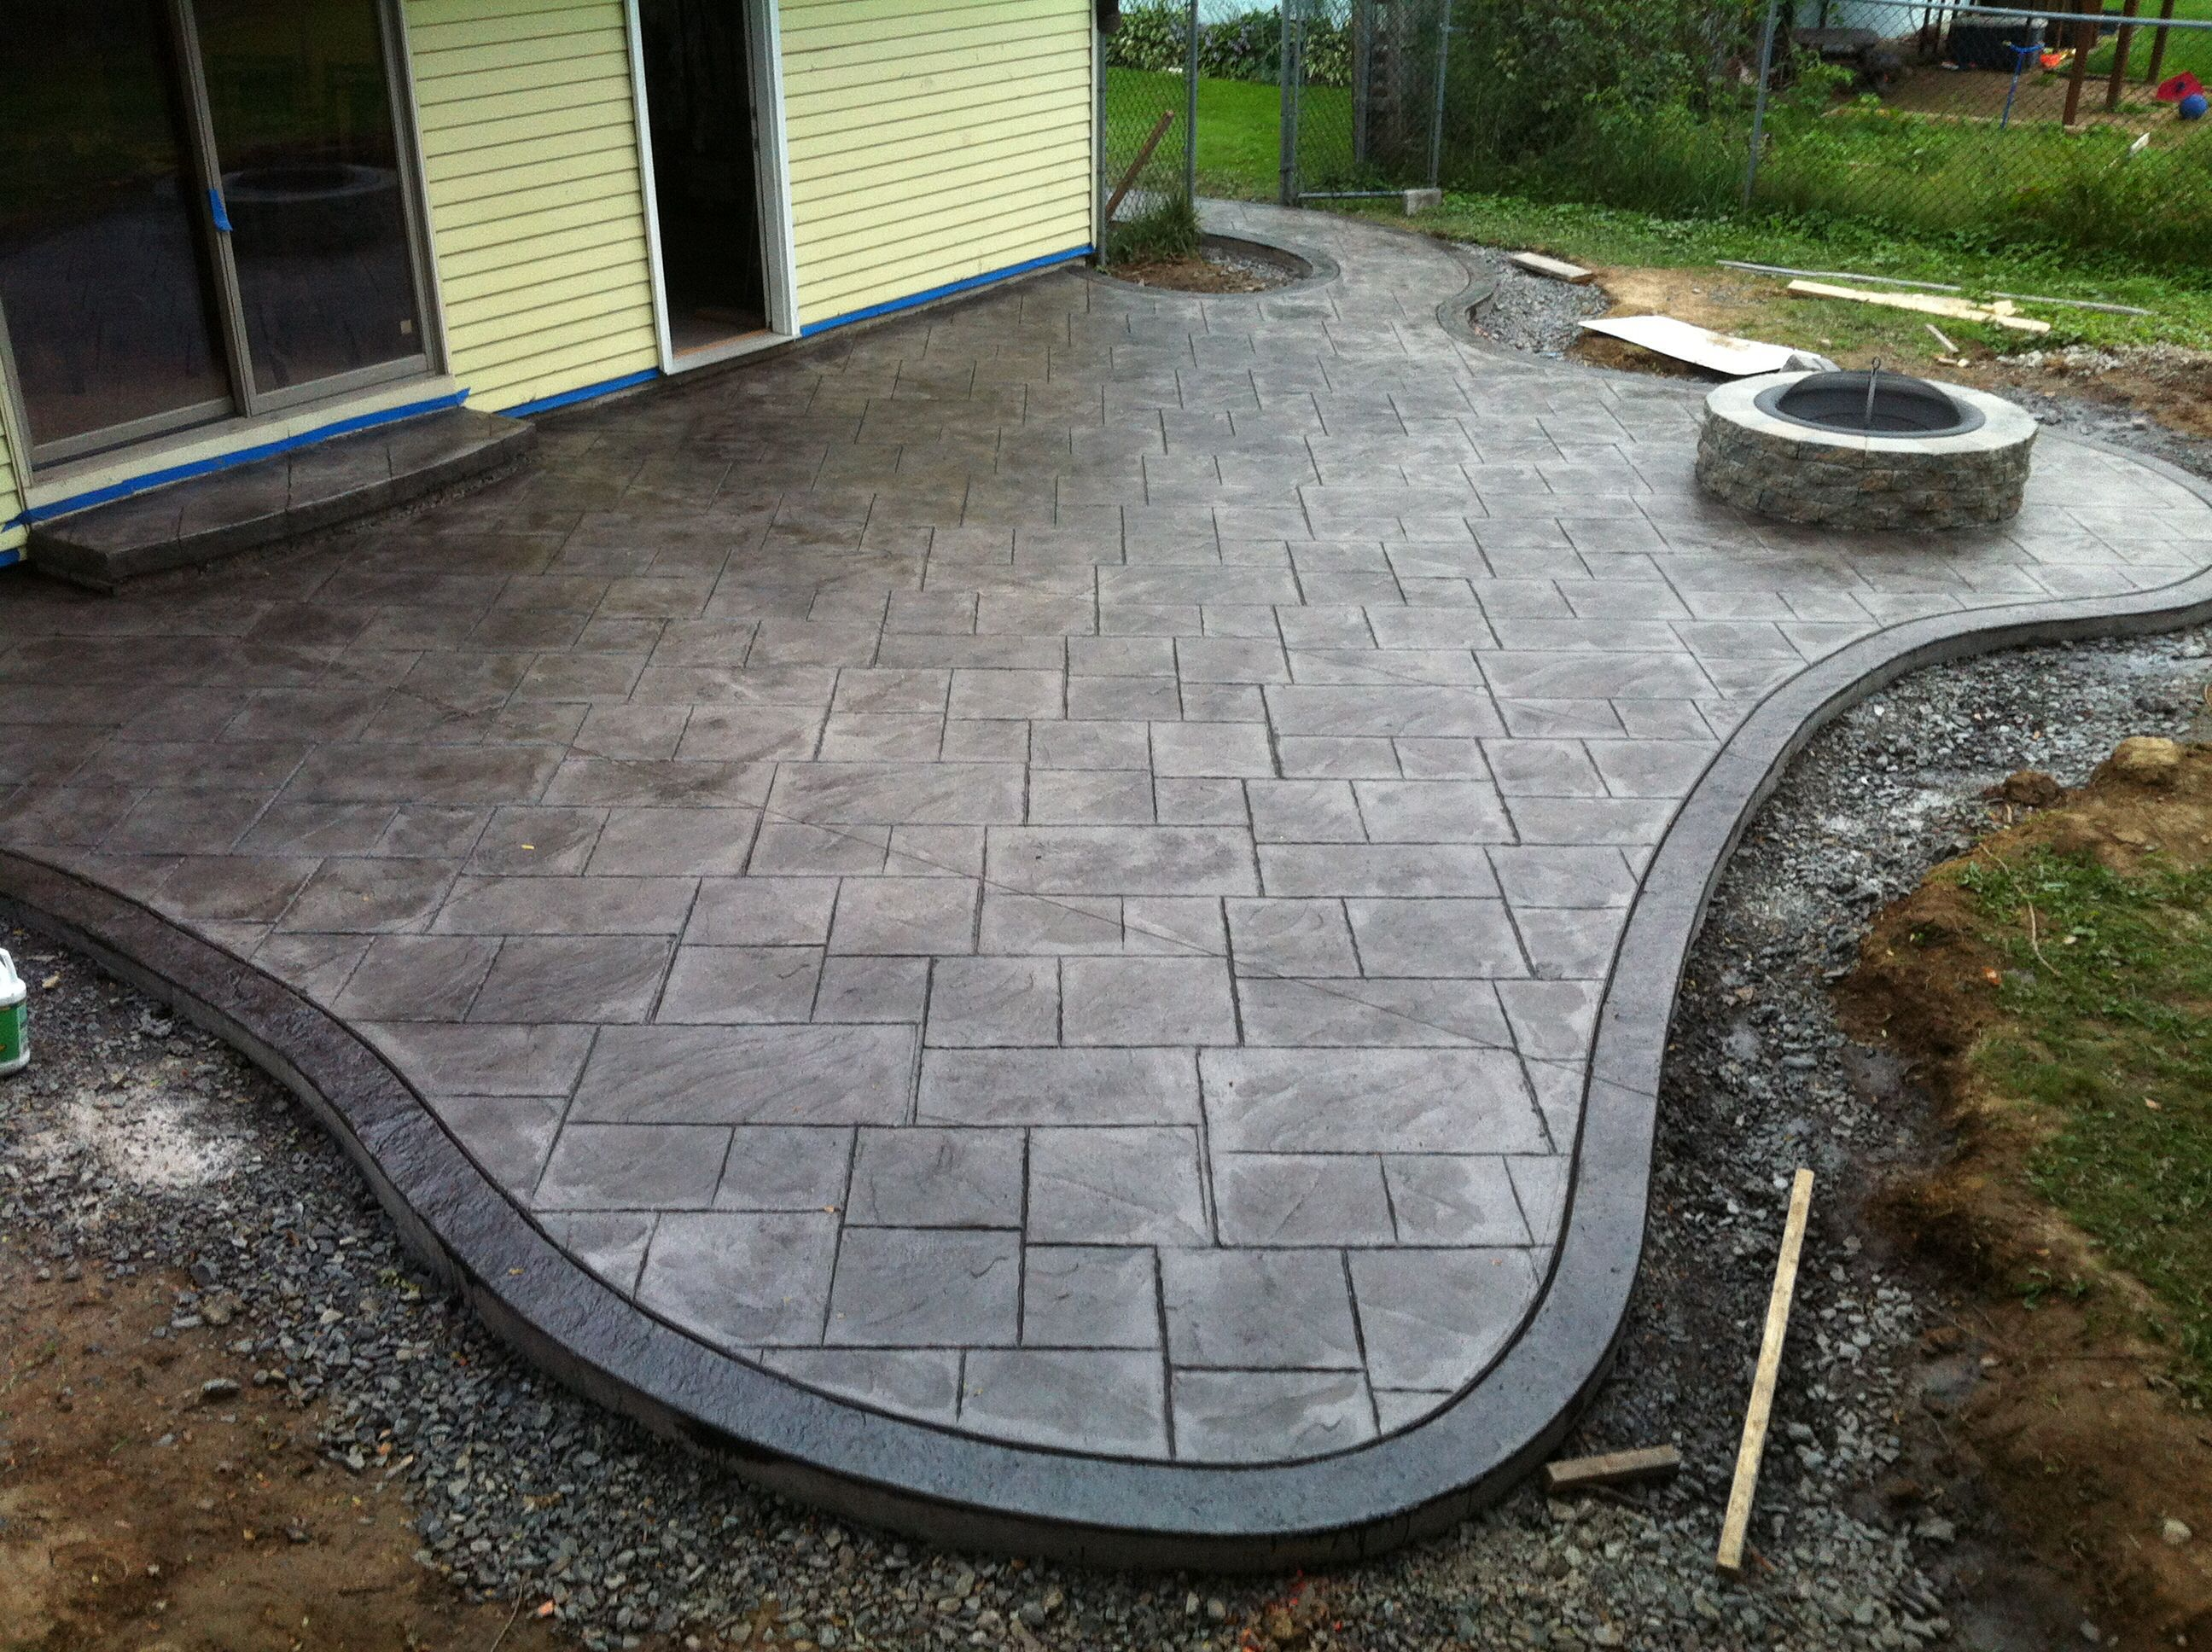 Concrete Patio. Stamped Concrete Patio And Fire Pit. Large Ashlar Pattern  With Seamless Slate